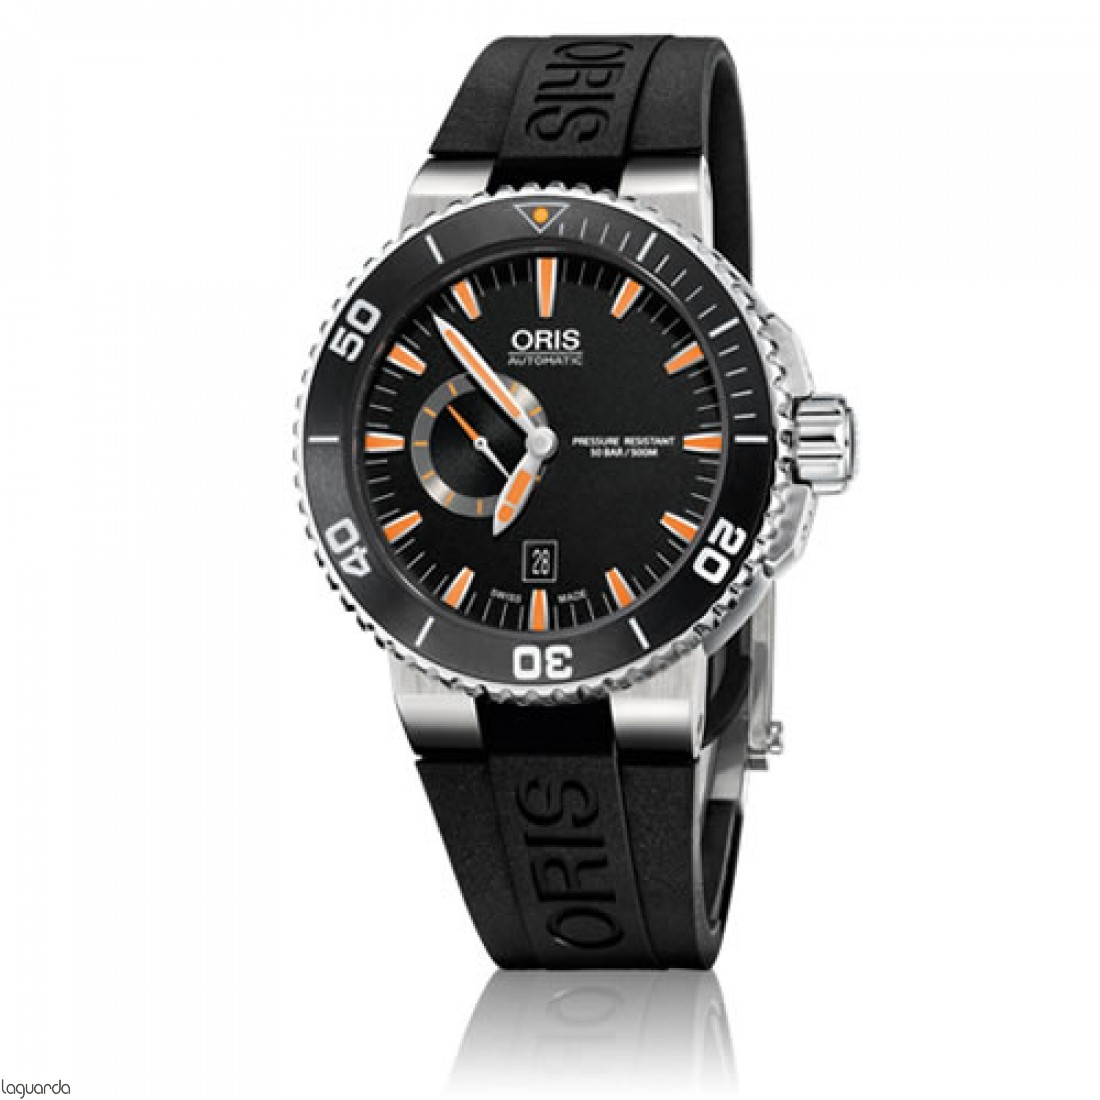 Reloj Oris Aquis Small Second Date 01 743 7673 4159 RS